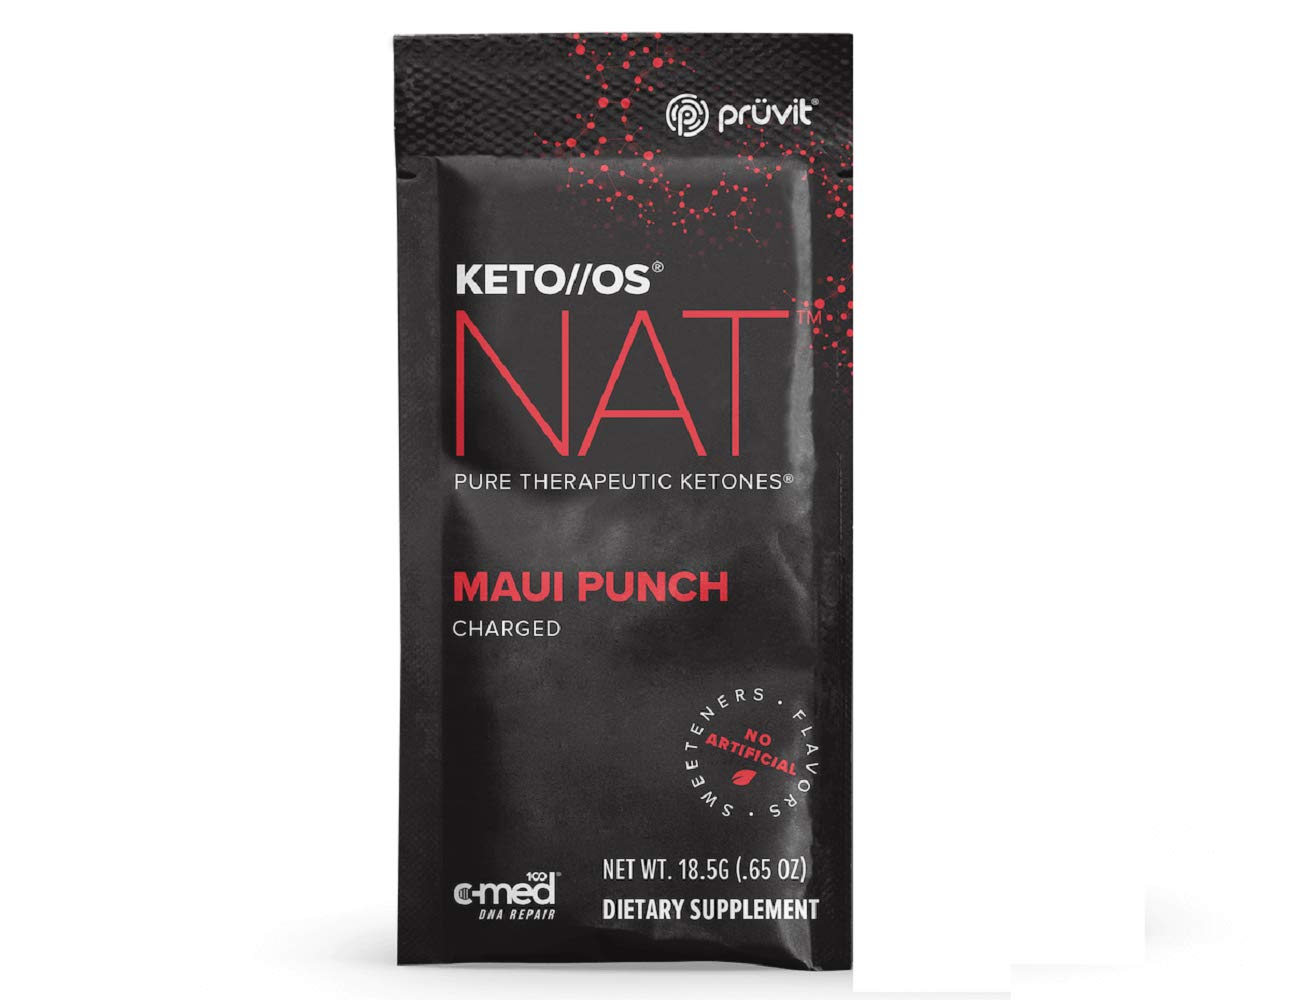 Pruvit Keto//OS NAT Charged, Maui Punch BHB Salts Ketogenic Supplement Ketones for Fat Loss, Workout Energy Boost Through Fast Ketosis (15 Sachets)